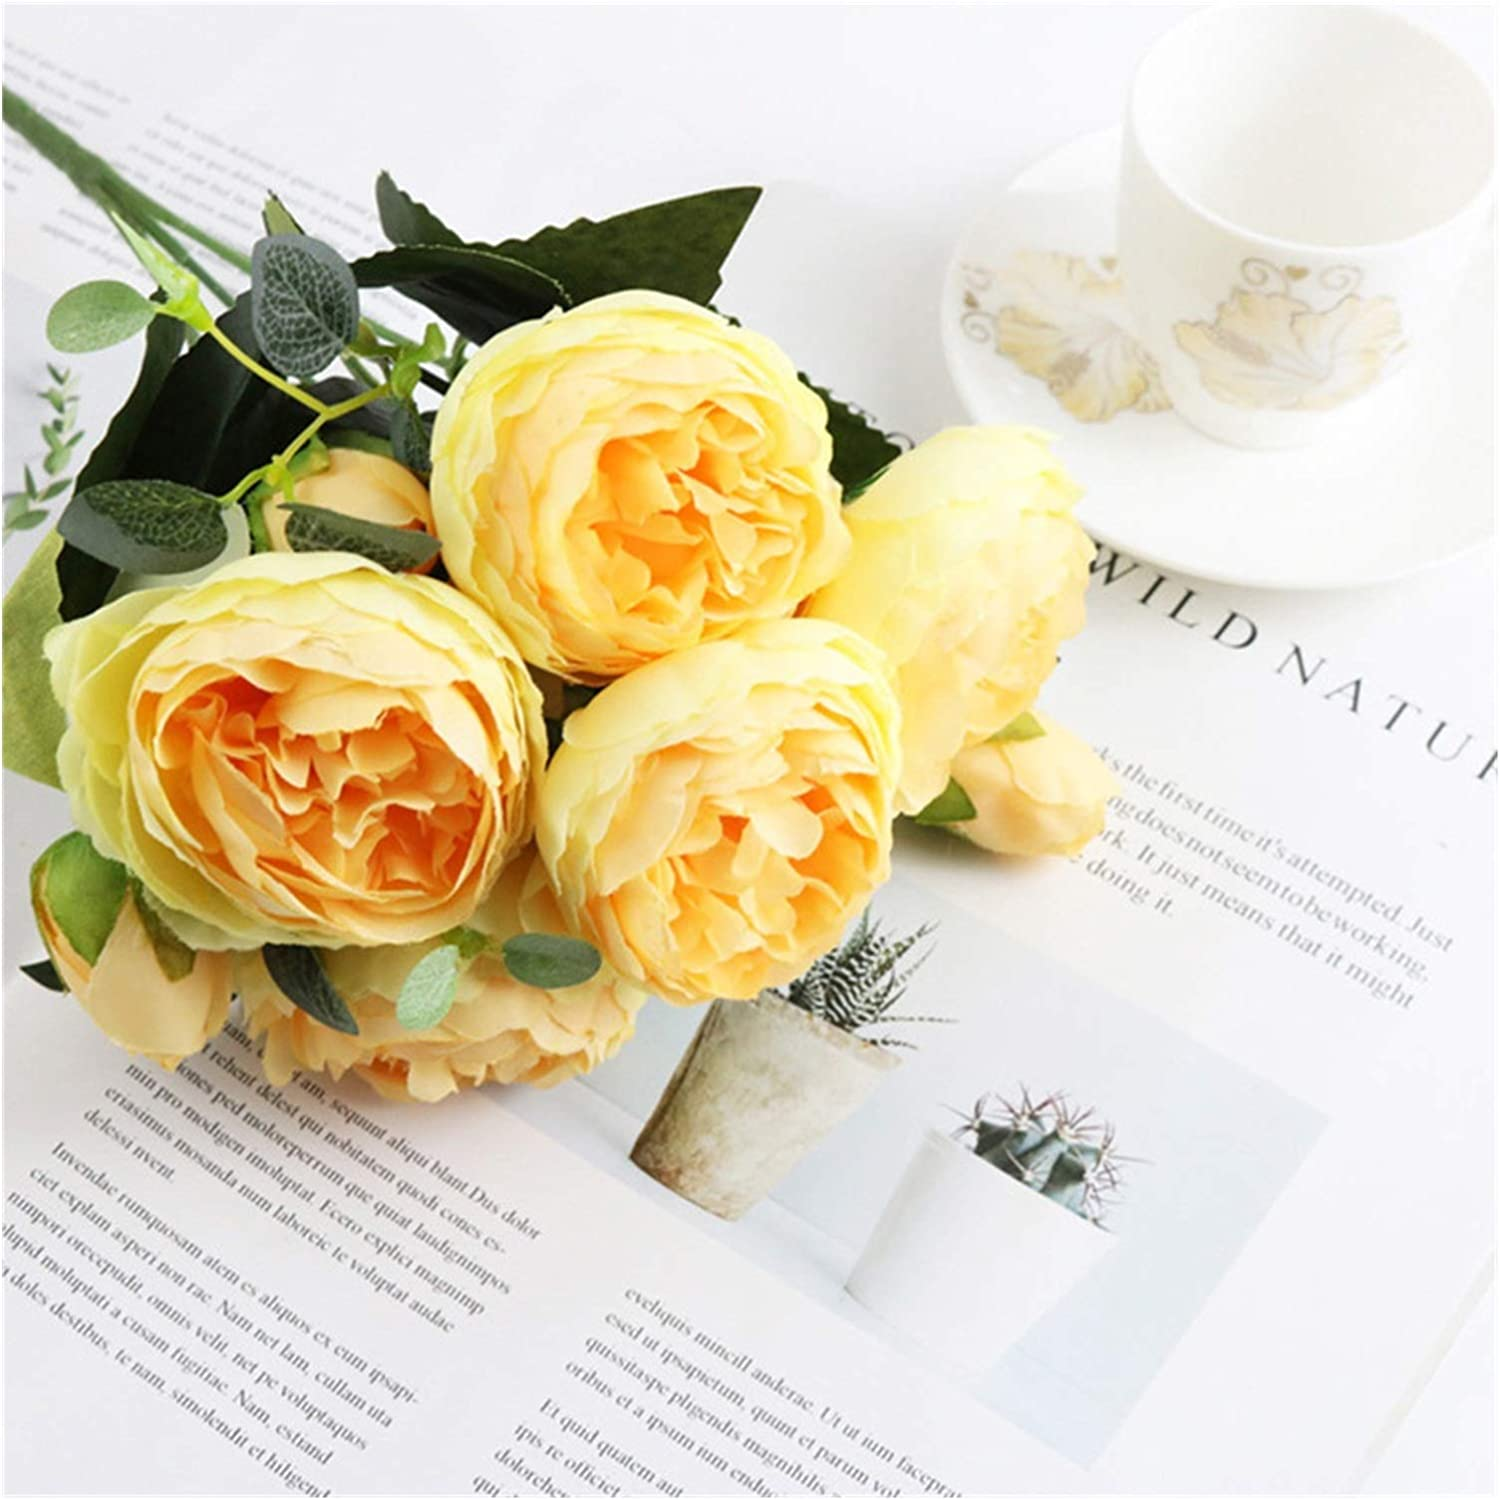 zhenxin Artificial Flowers 1 Bundle Roses Max 88% Courier shipping free shipping OFF Home Deco Silk